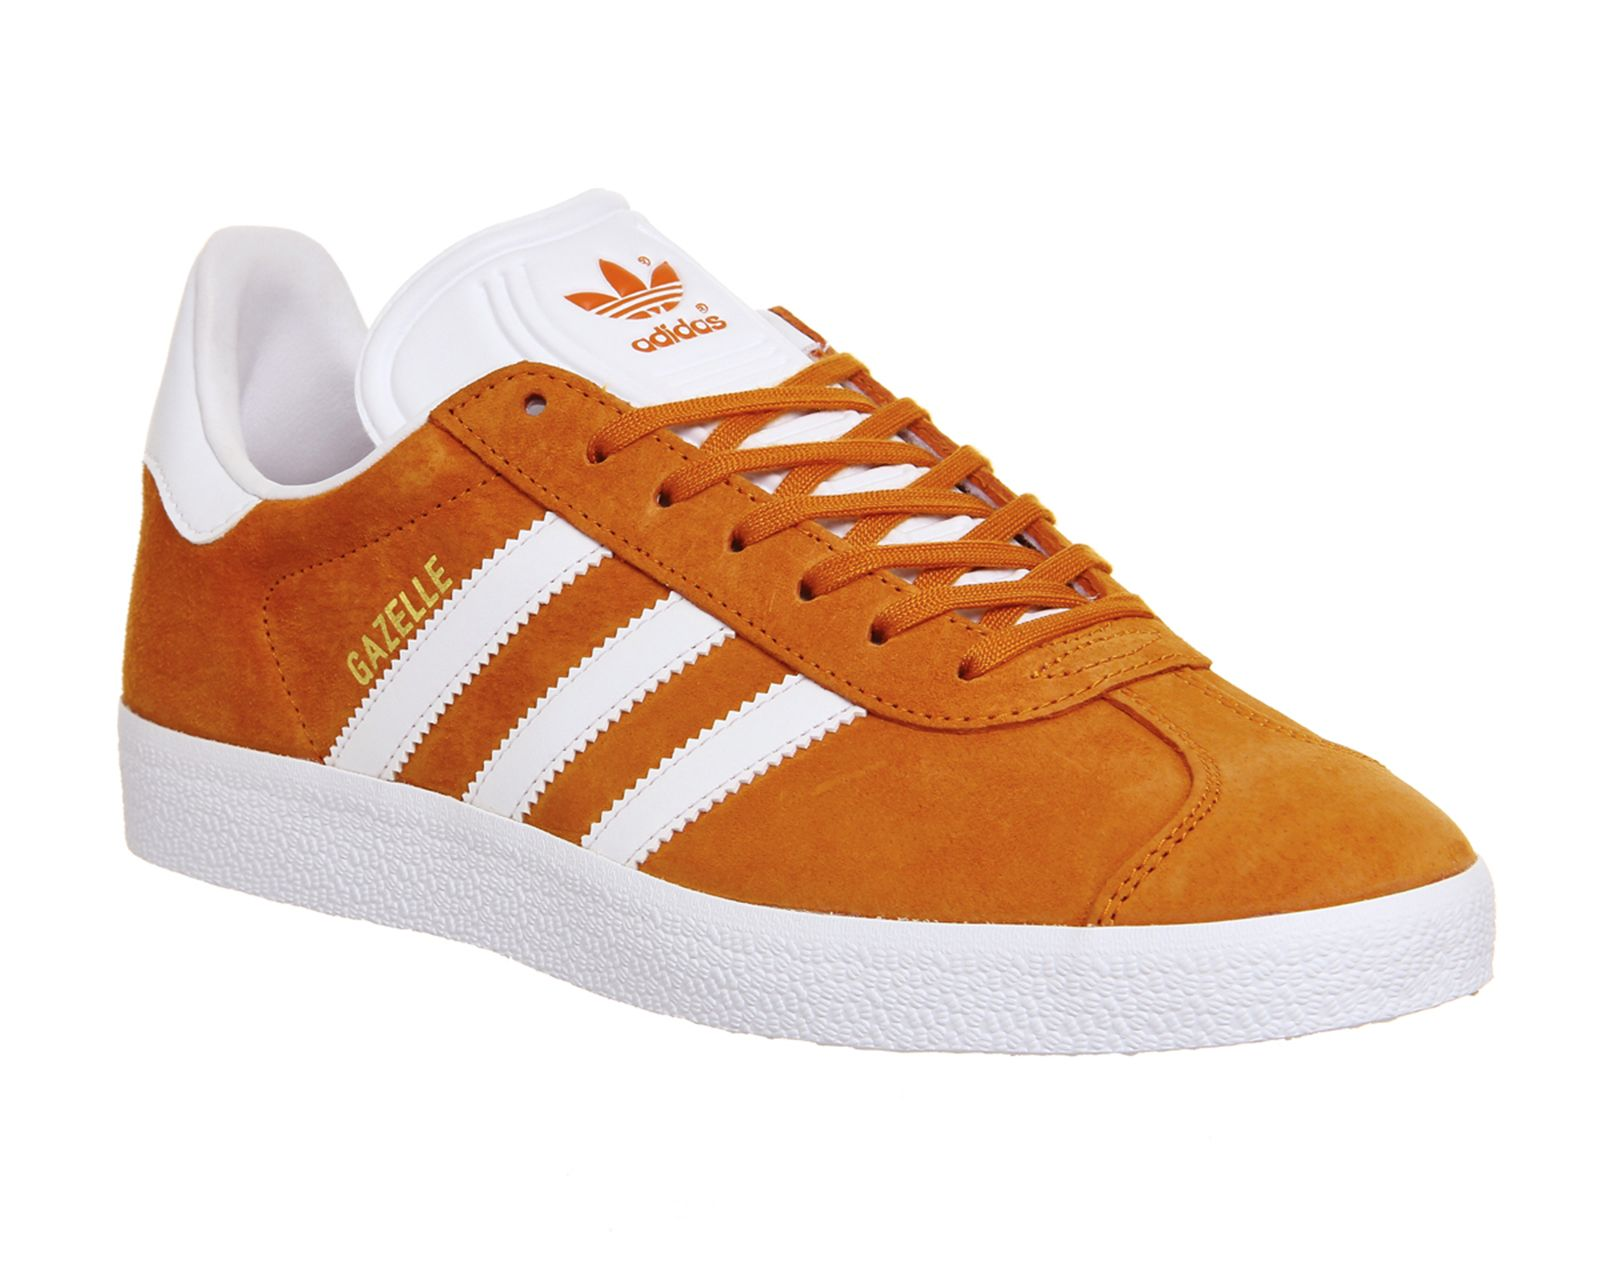 low priced d49c2 98cdb Buy Unity Orange White Gold Met Adidas Gazelle from OFFICE.co.uk.